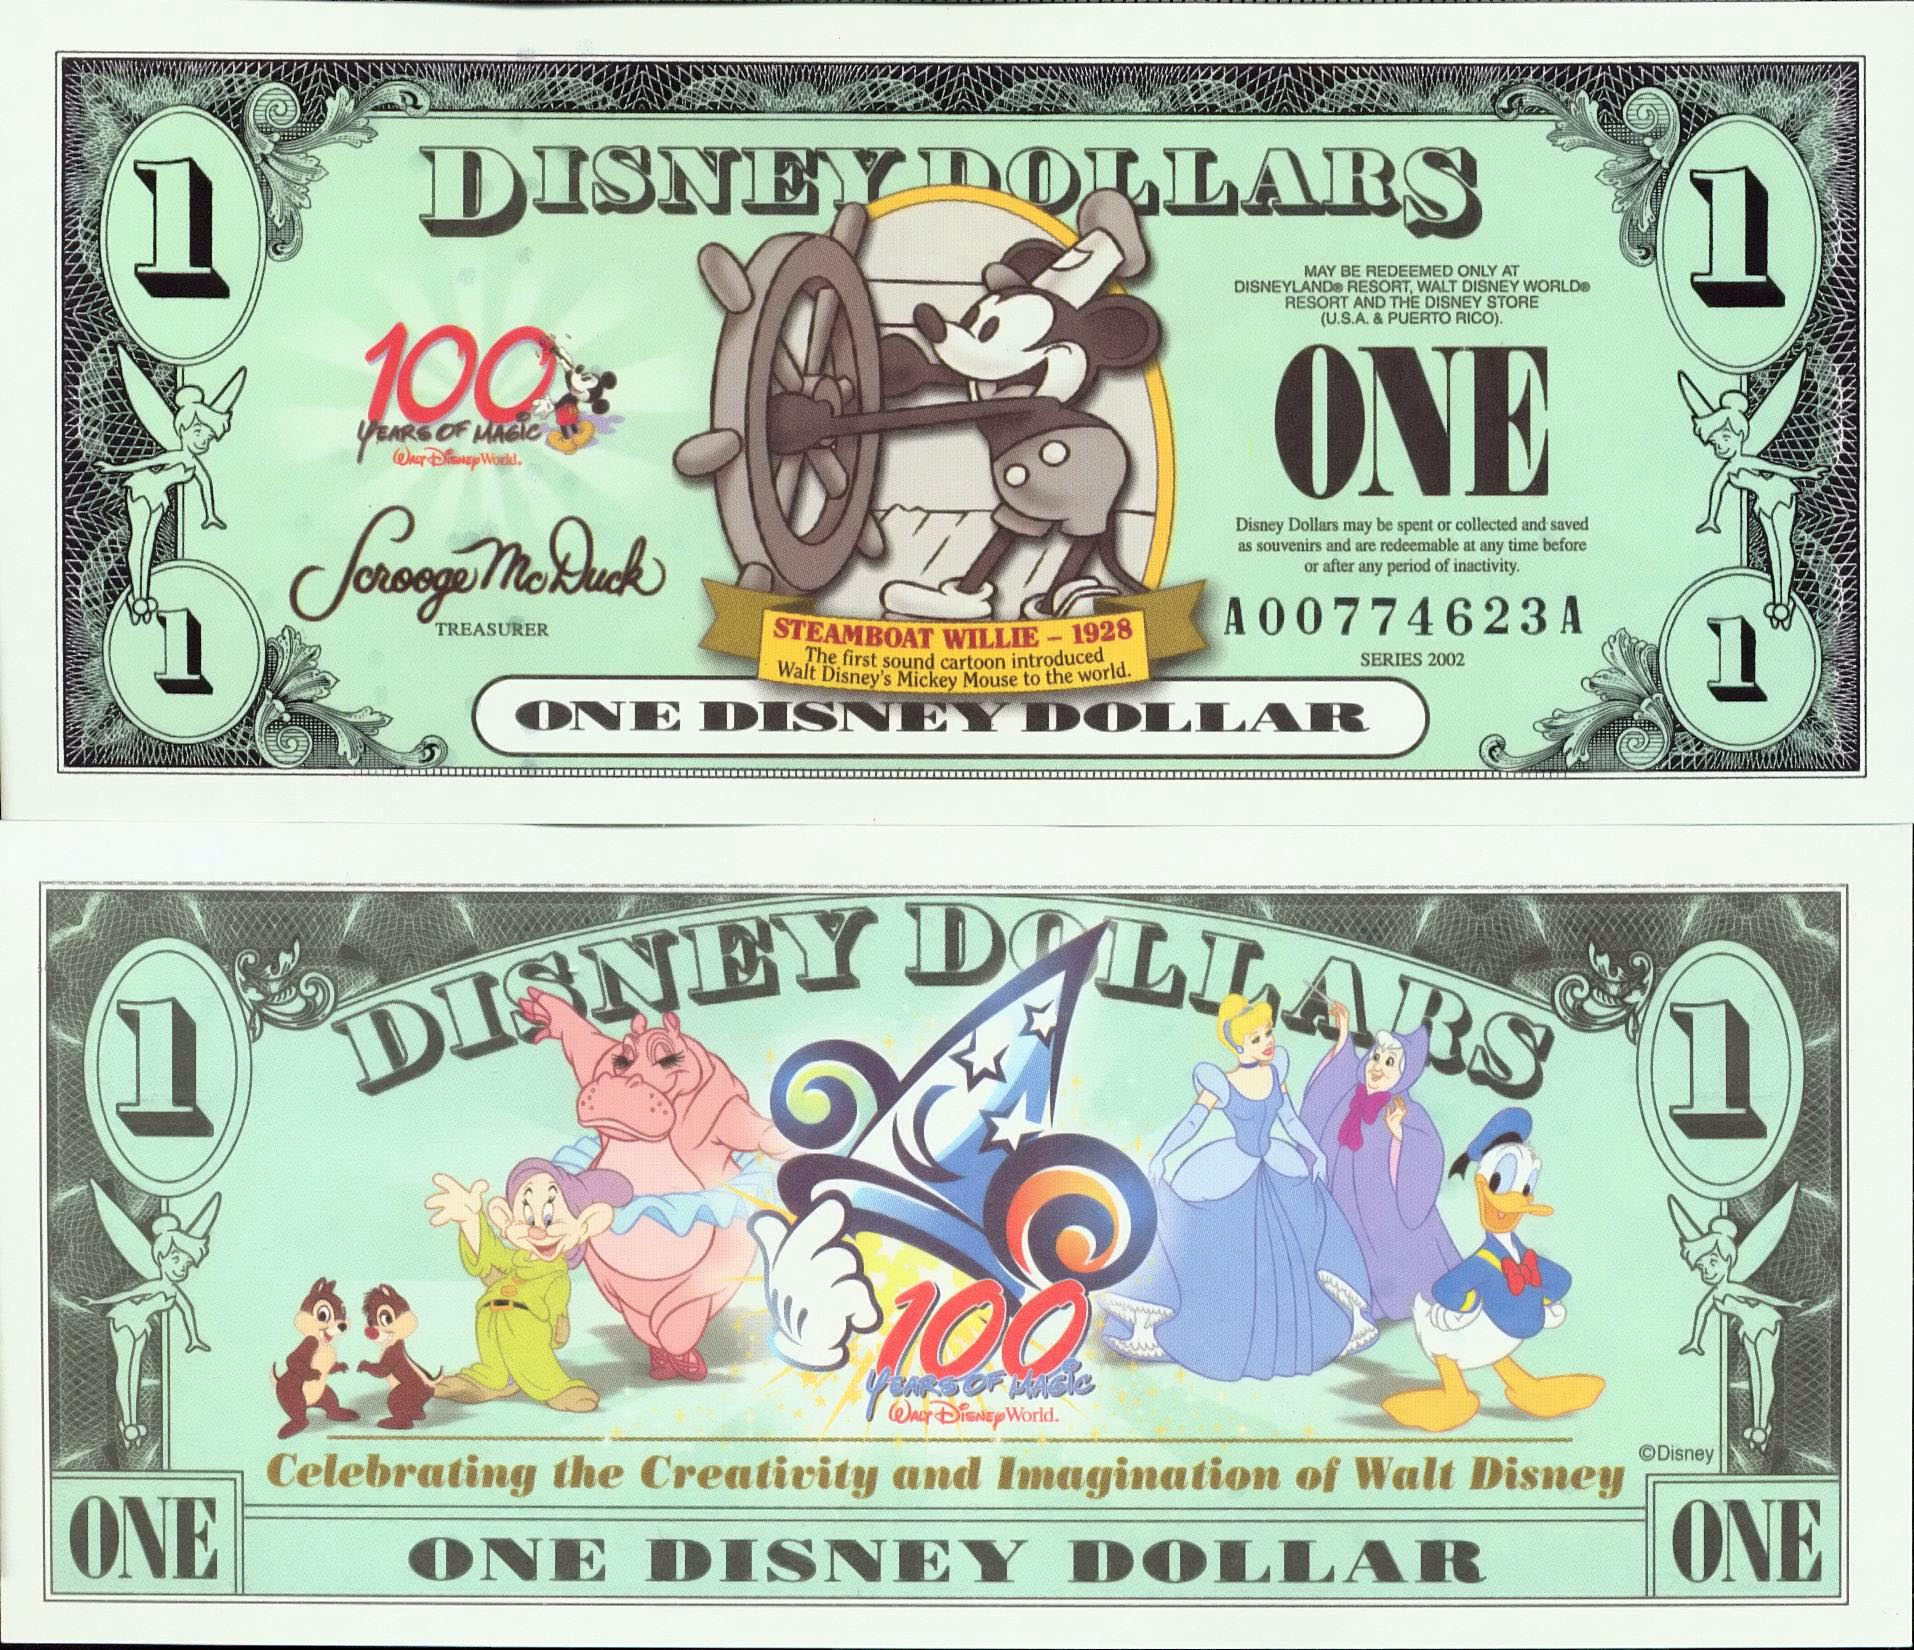 image about Disney Dollars Printable called - Disney Cash